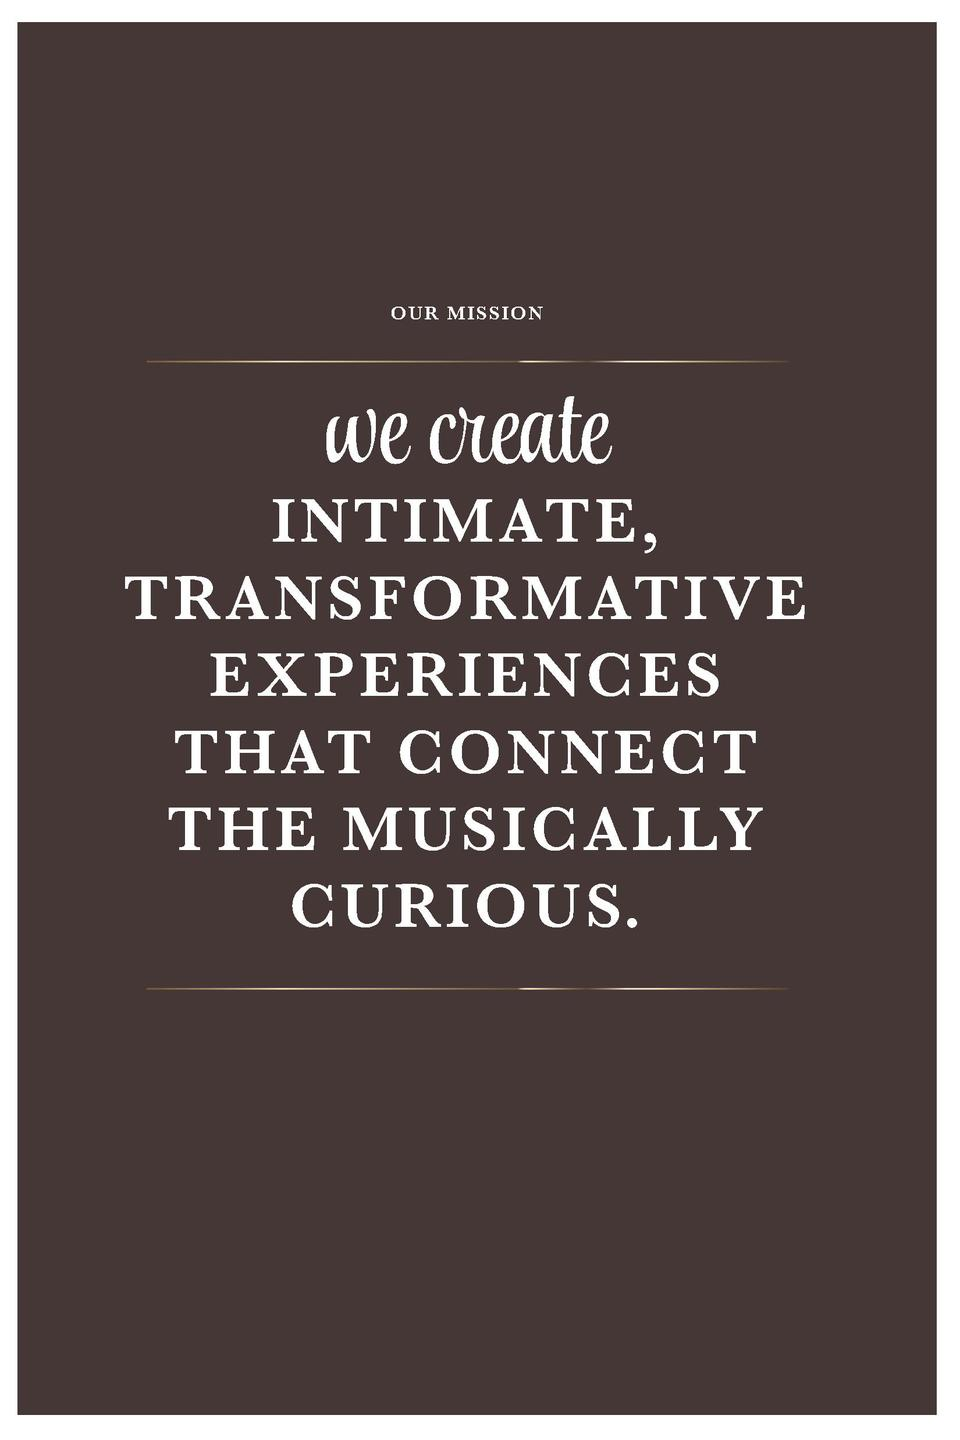 OUR MISSION  we create  INTIMATE, TRANSFORMATIVE EXPERIENCES THAT CONNECT THE MUSICALLY CURIOUS.